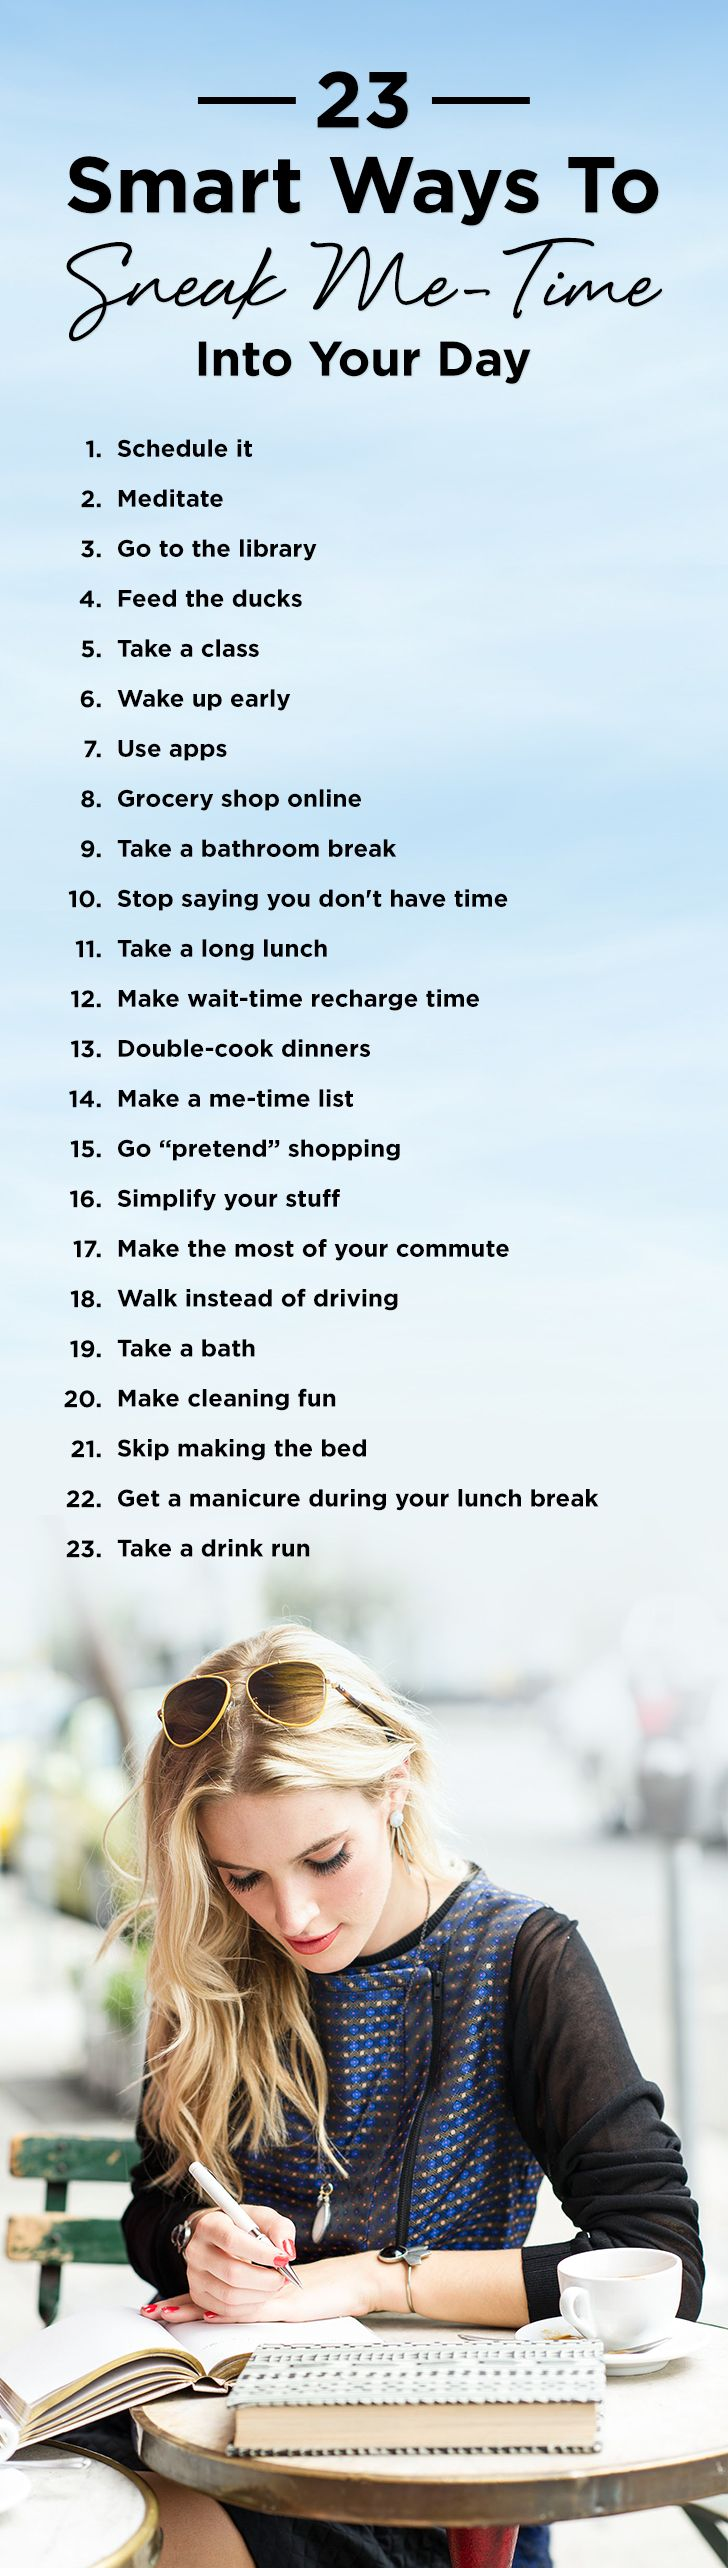 In need of some #MeTime inspiration? Each week, randomly pick one of these 25 ideas to try.